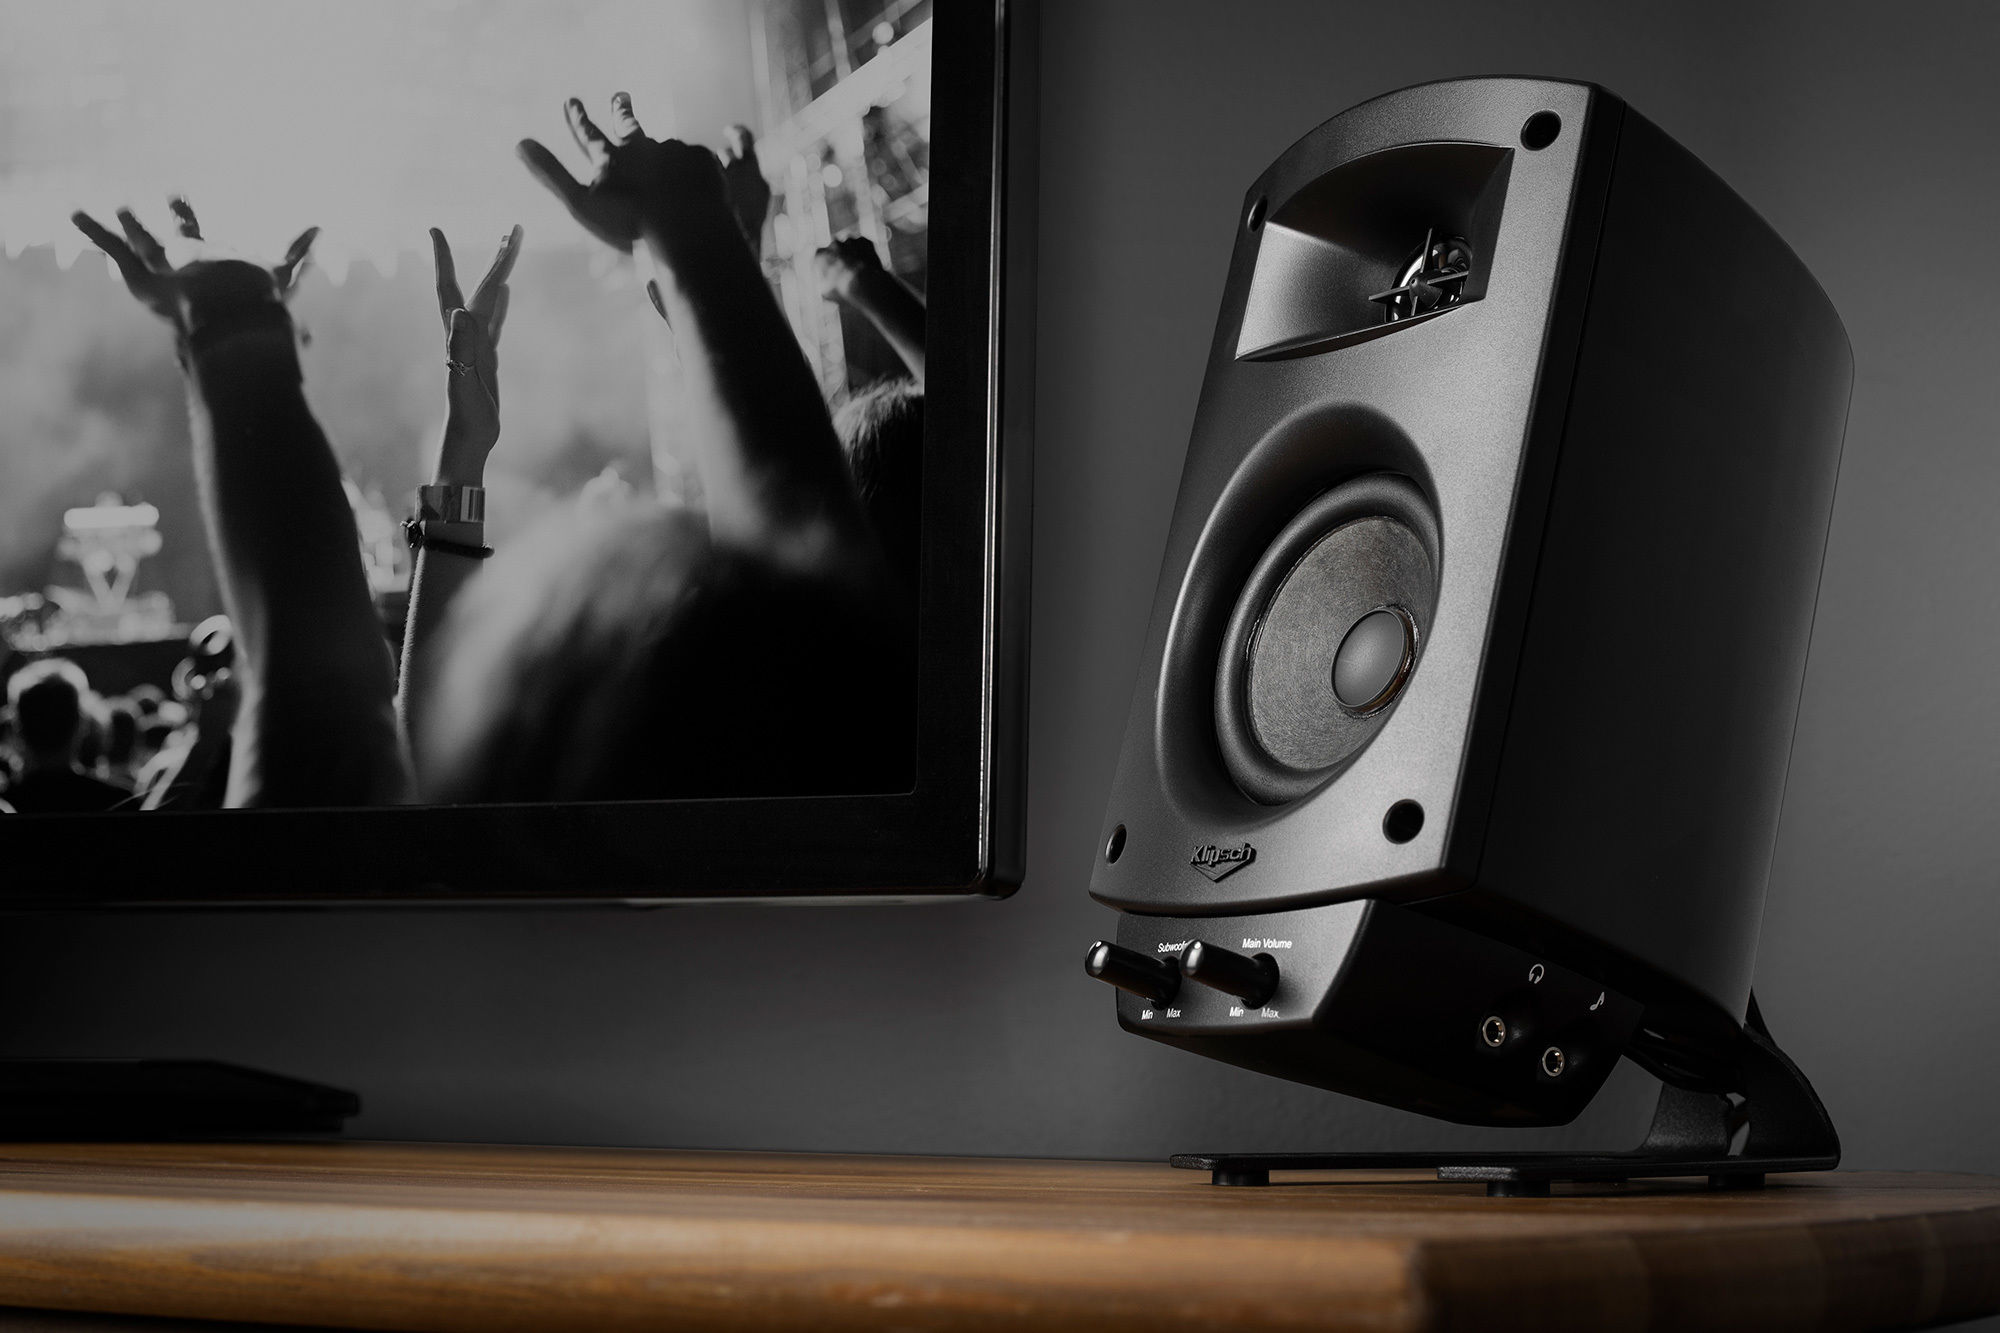 klipsch promedia 2.1 speaker system manual